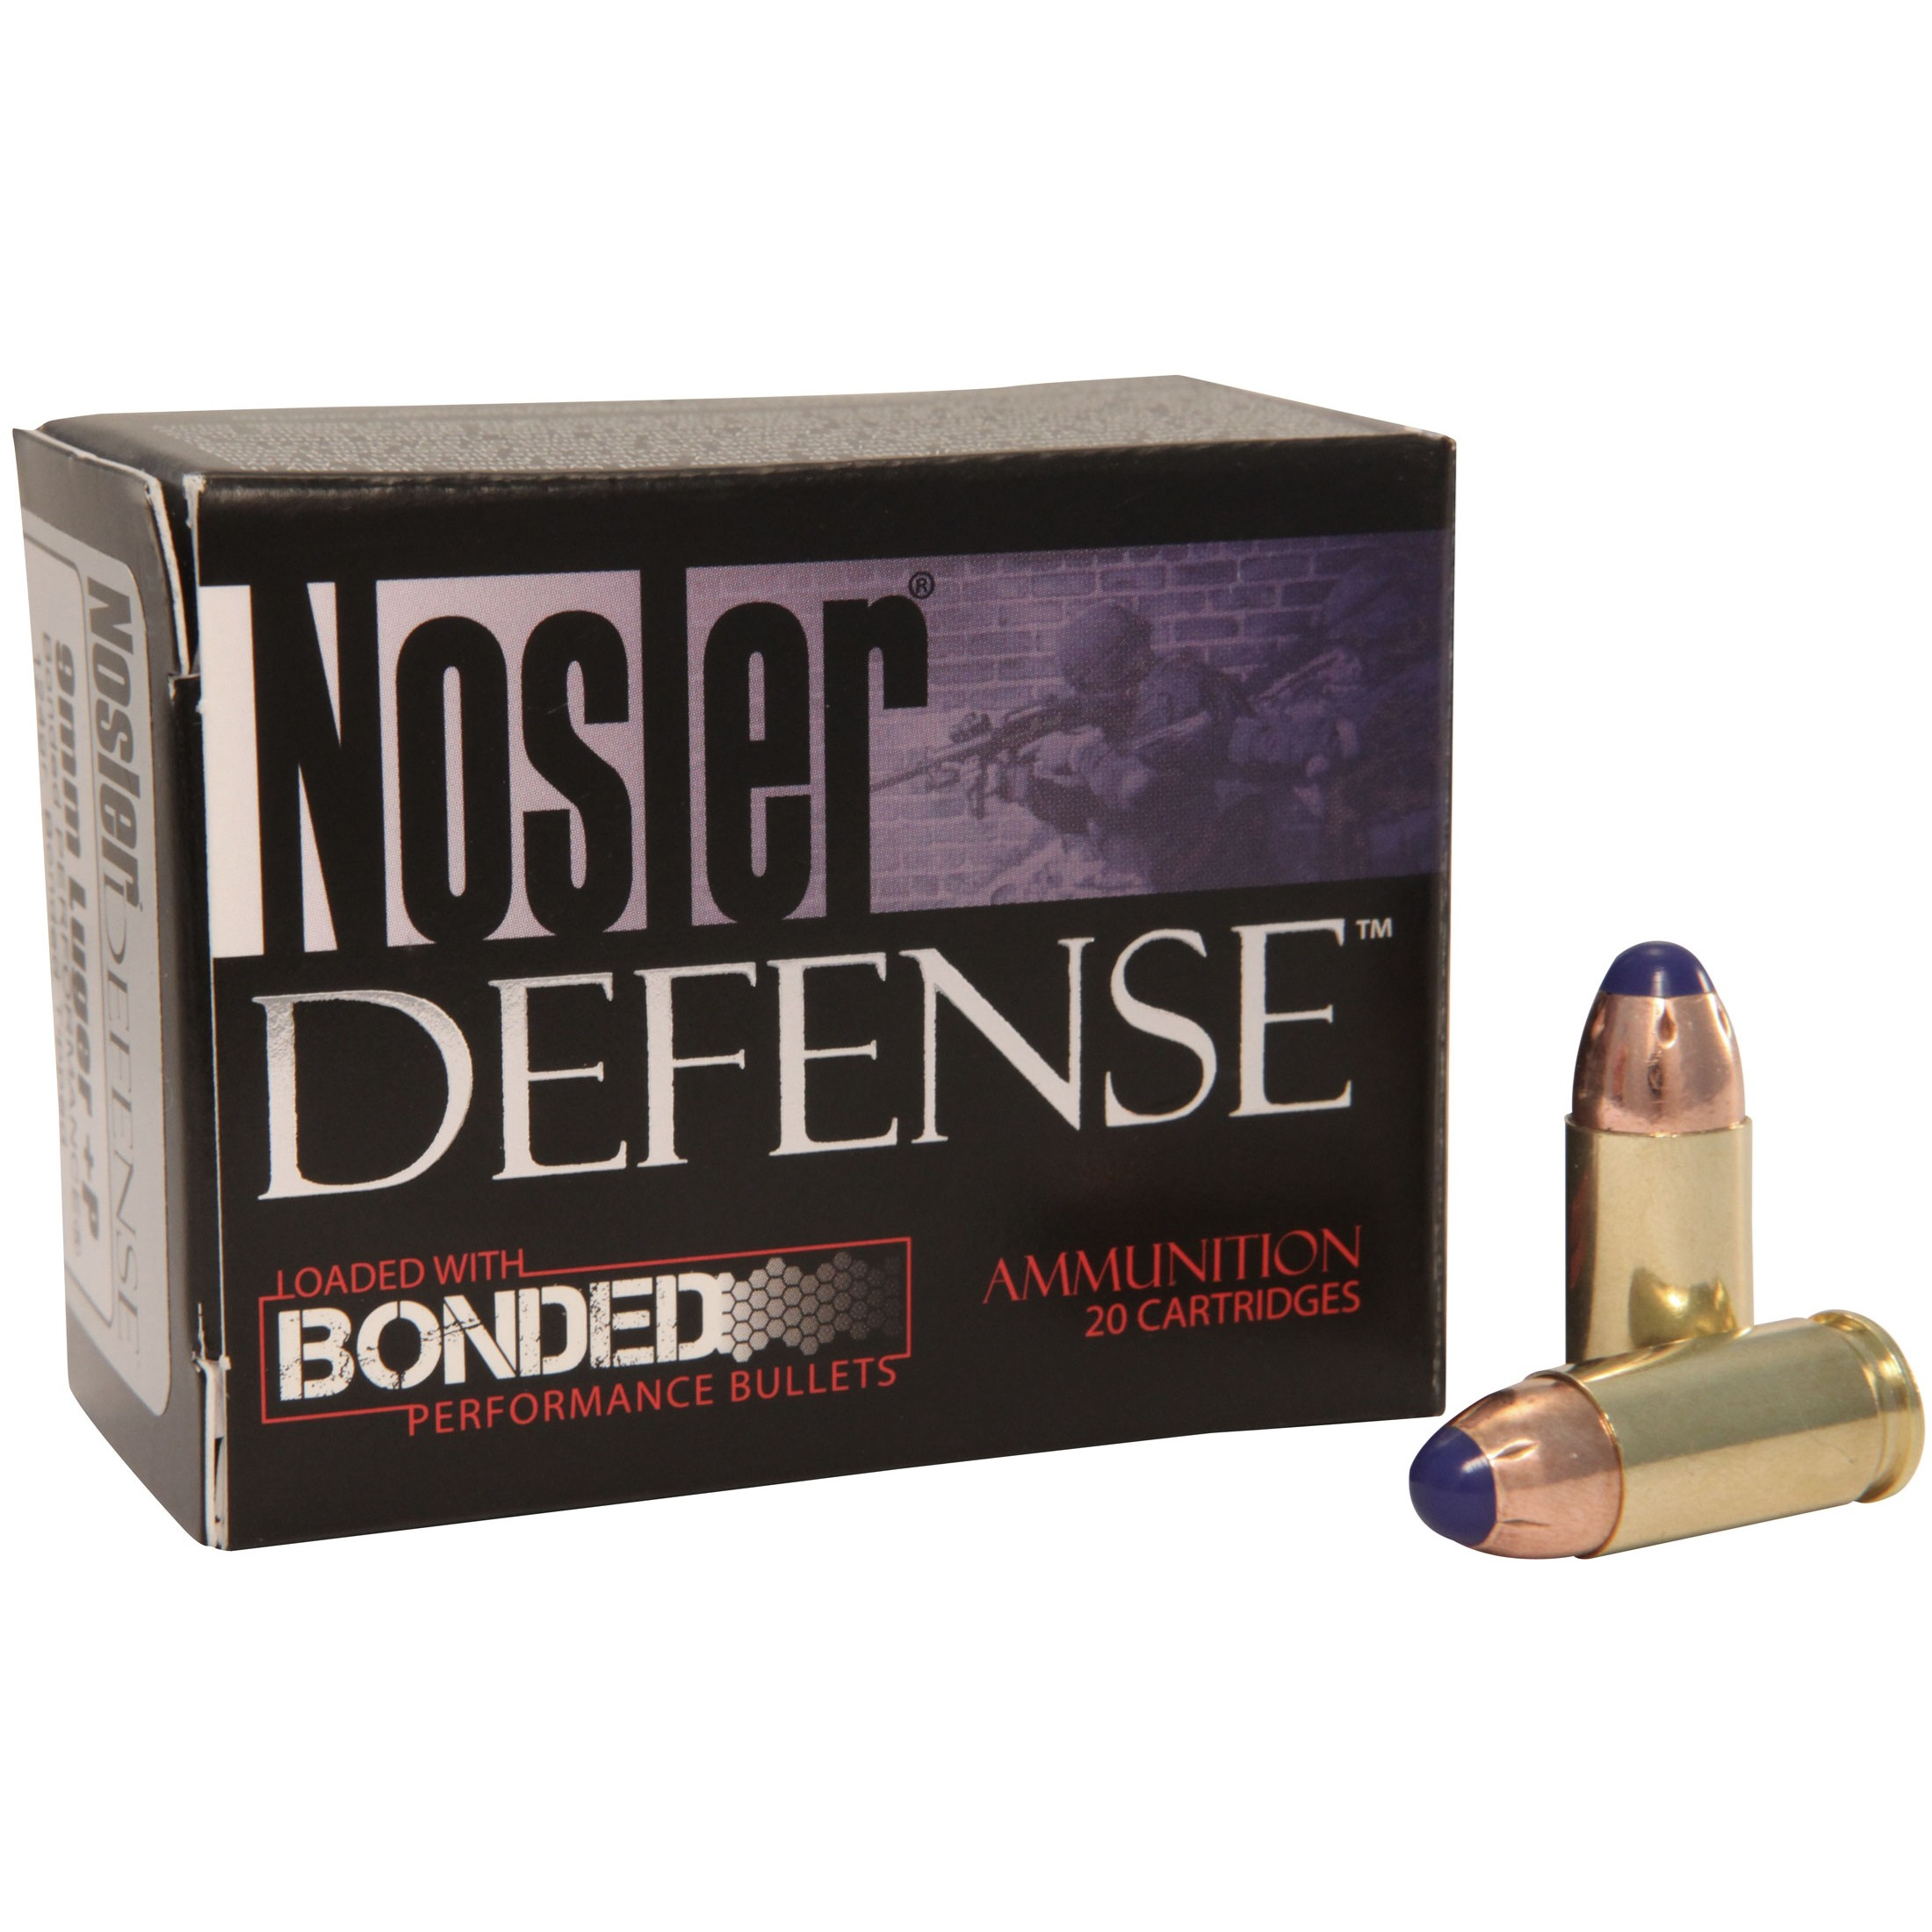 Nosler Defense Handgun 9mm Luger 20rd Ammo